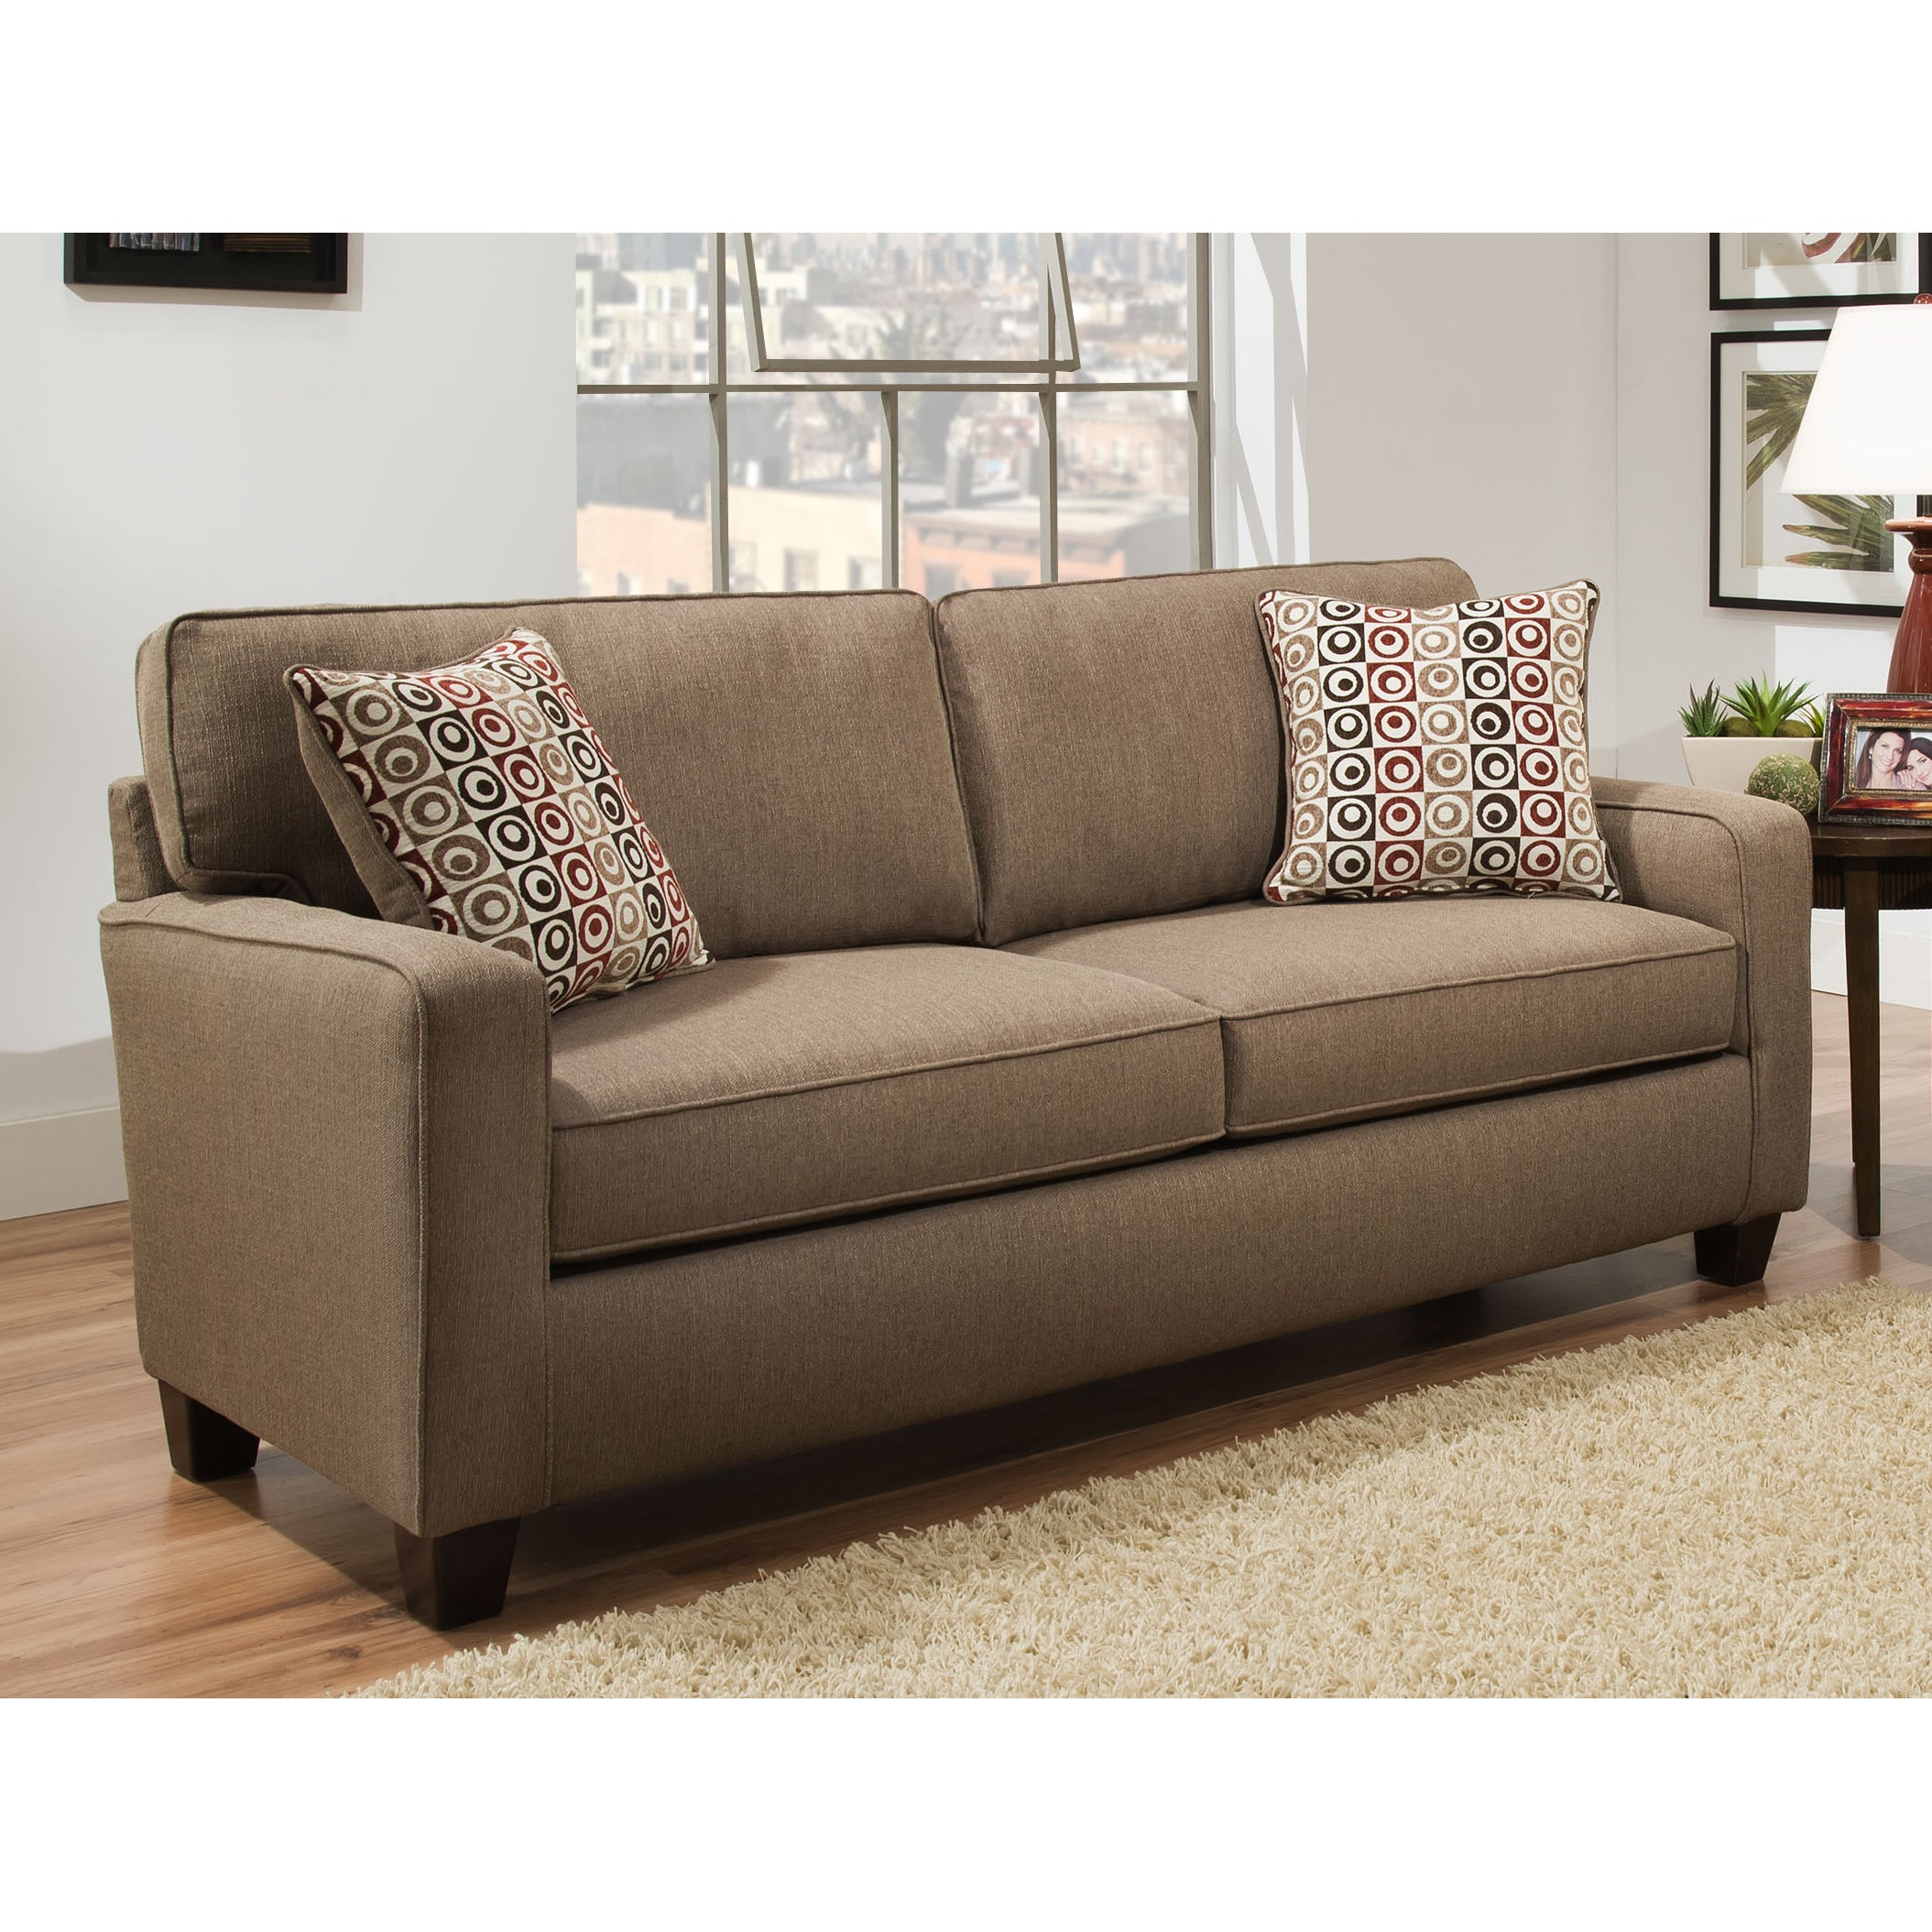 Shop Sofab Riley Nutmeg Brown Sofa With Two Reversible Accent Pillows Overstock 13430835